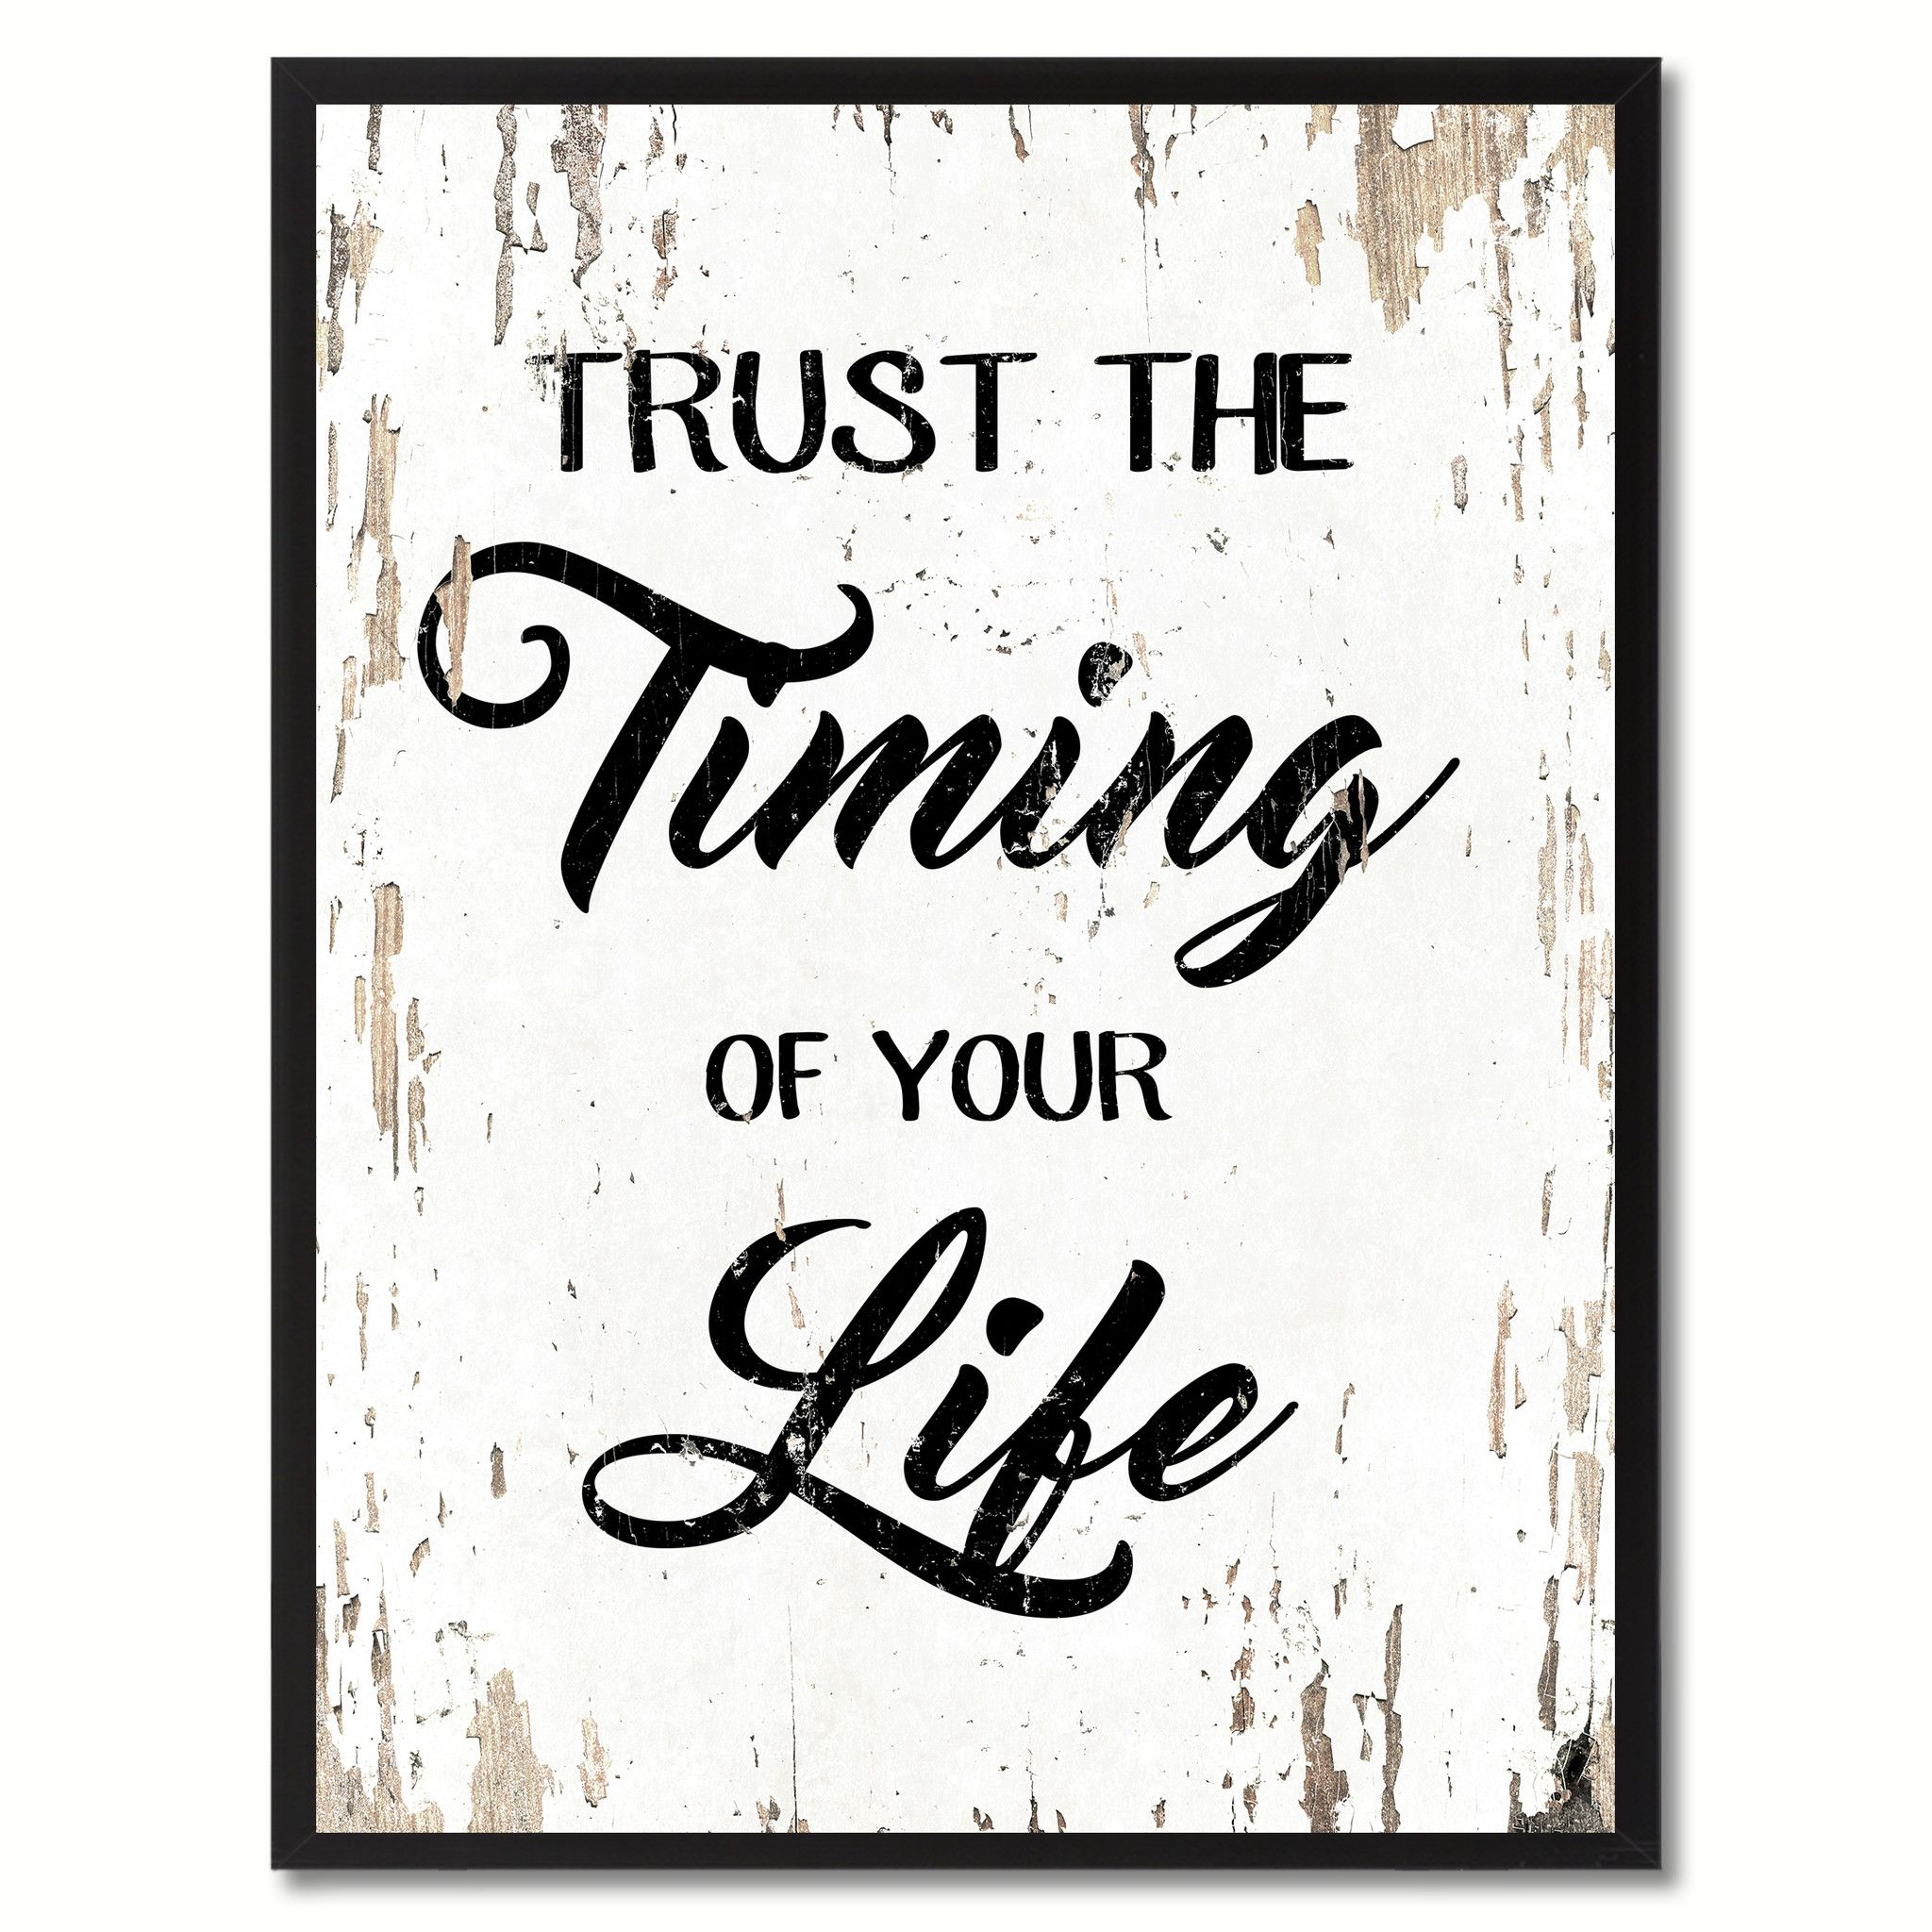 Trust the timing of your life motivation quote saying gift ideas ebern designs trust the timing of your life motivation framed textual art on canvas size jeuxipadfo Image collections